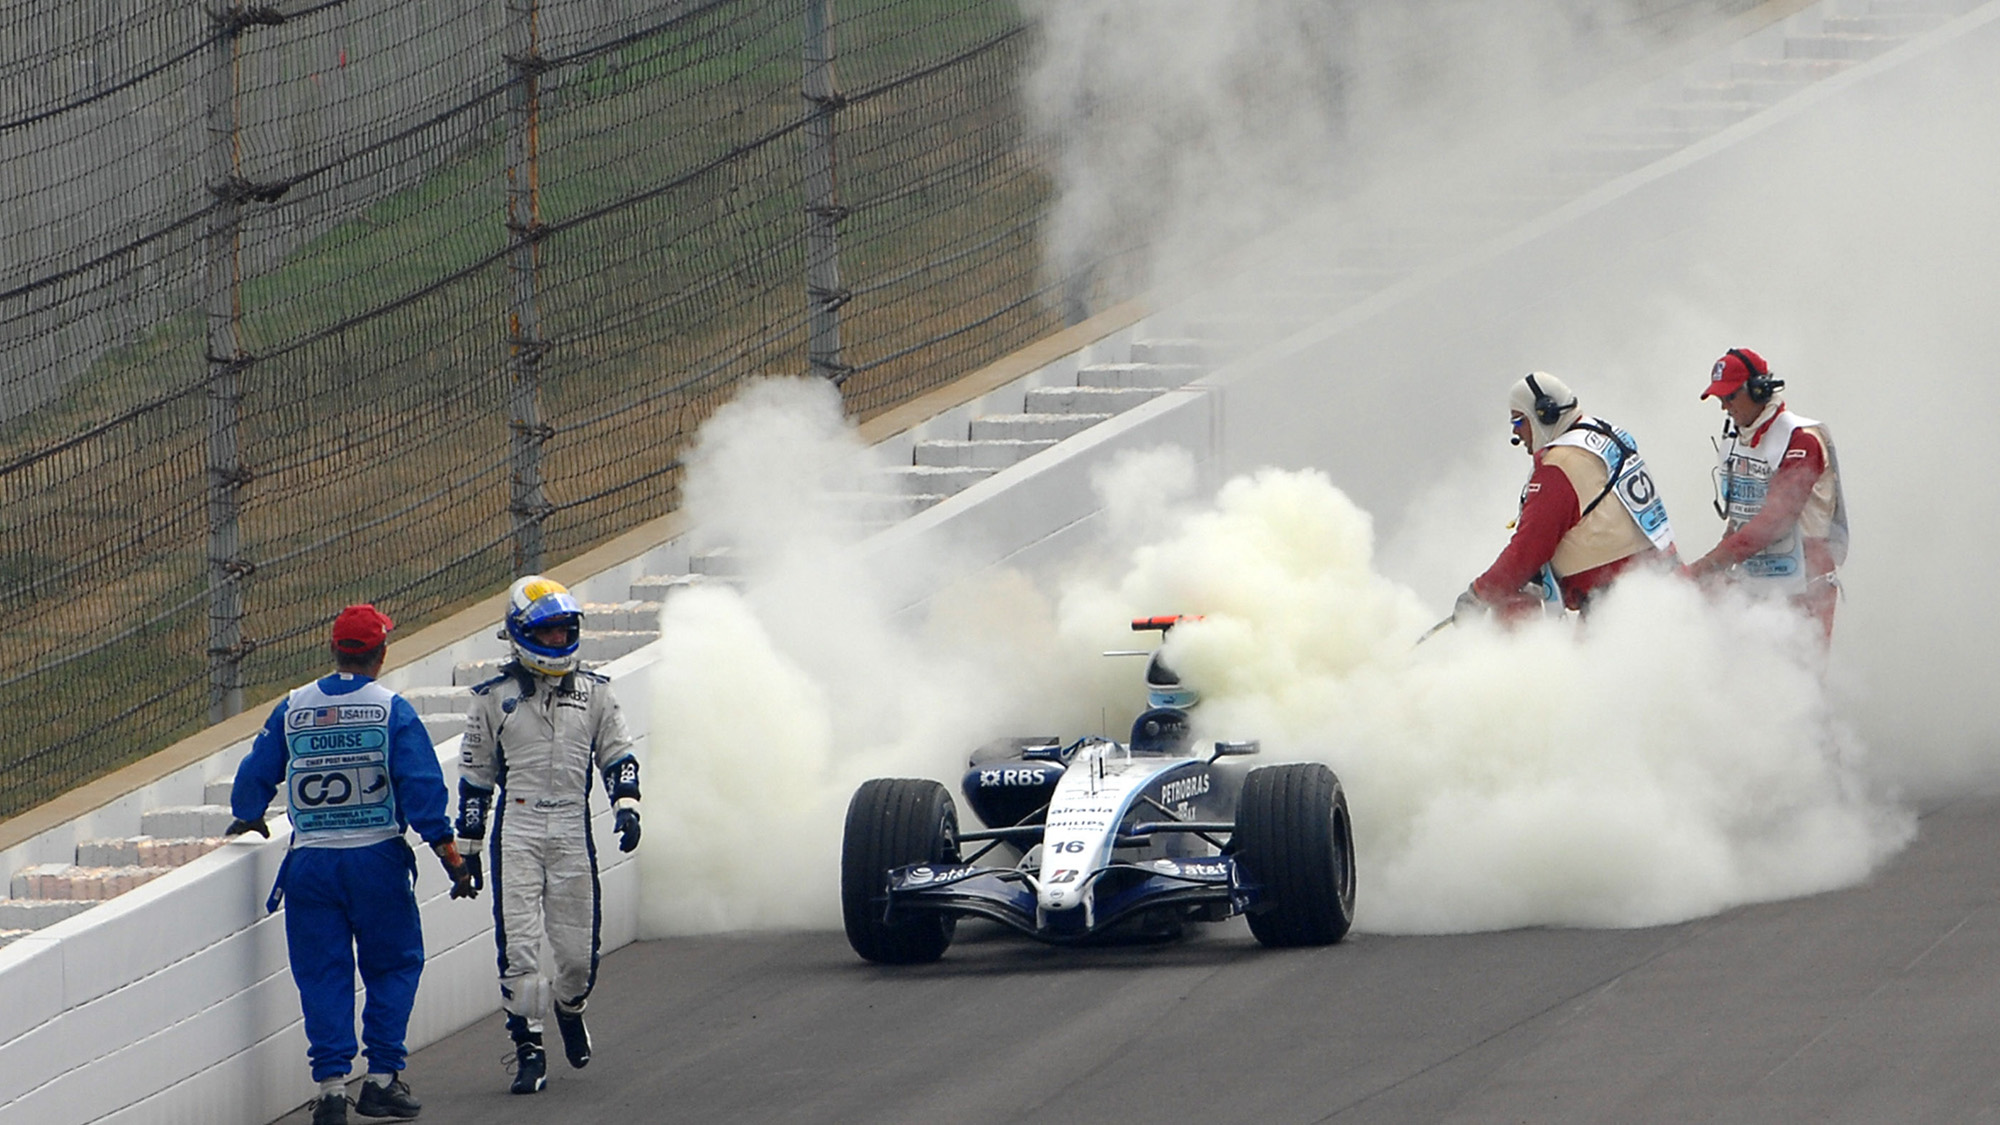 Williams of Nico Rosberg on fire at the 2007 US Grand prix